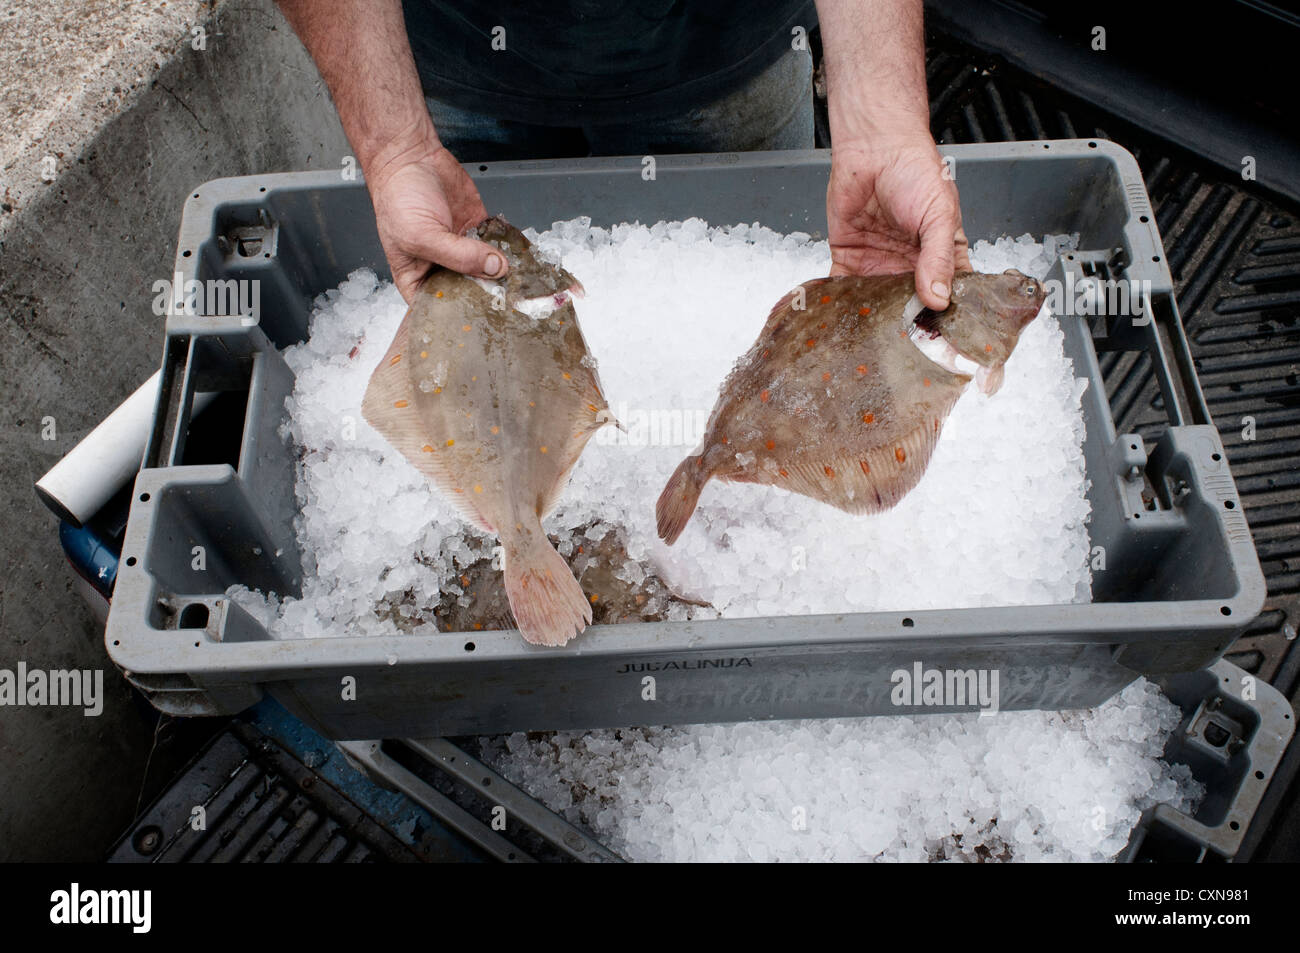 Dover Sole, Fish in the hands of a fisherman, UK - Stock Image